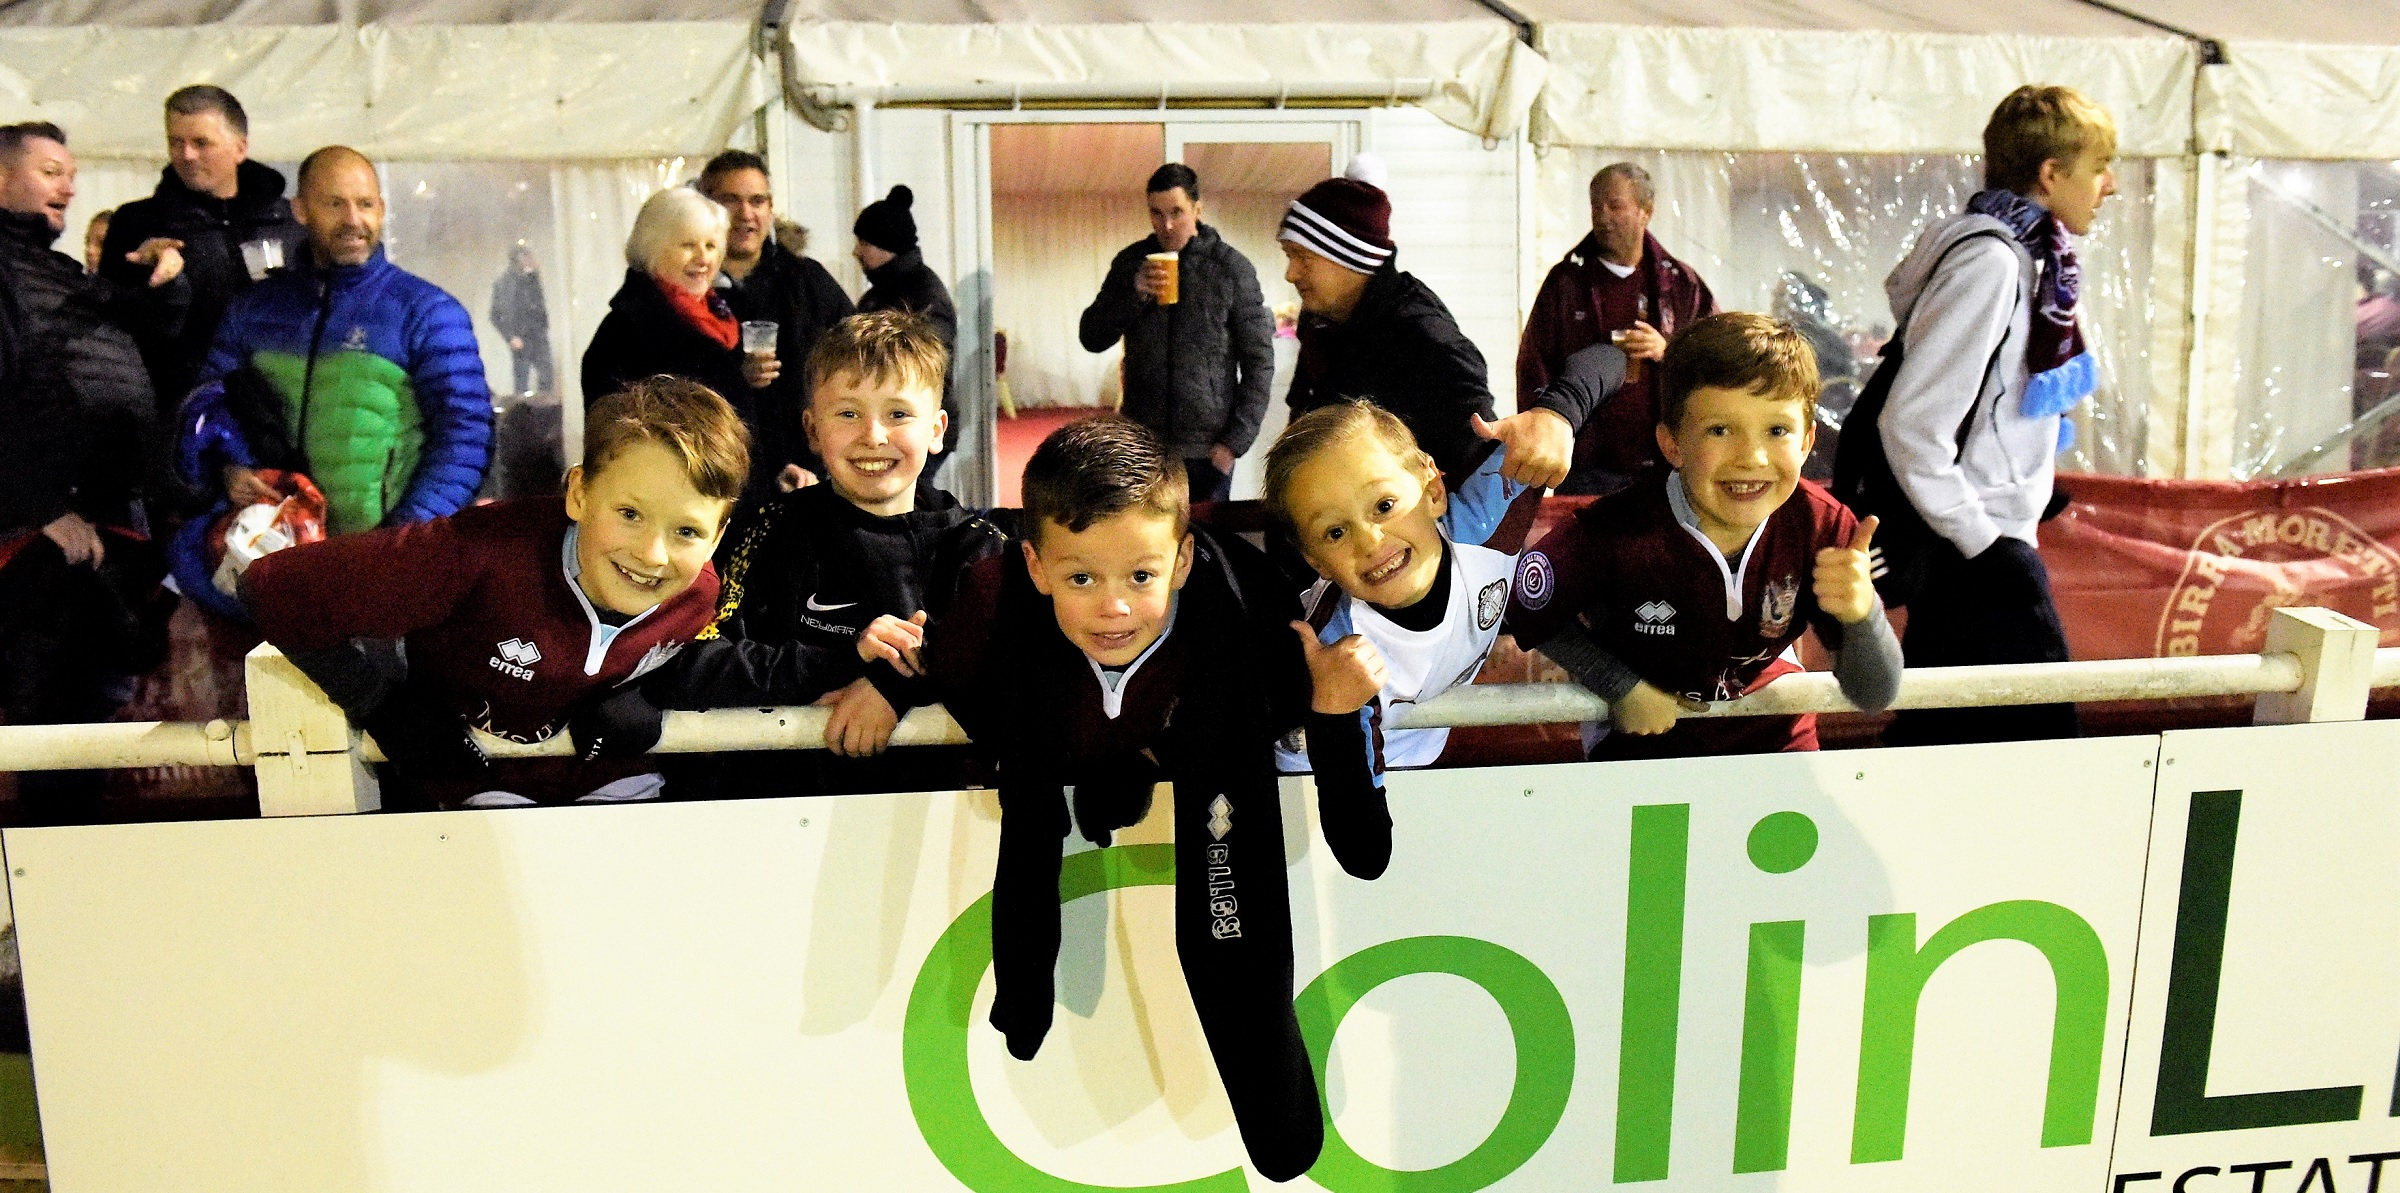 South Shields vs Workington: Join us for One Club Day at Mariners Park!